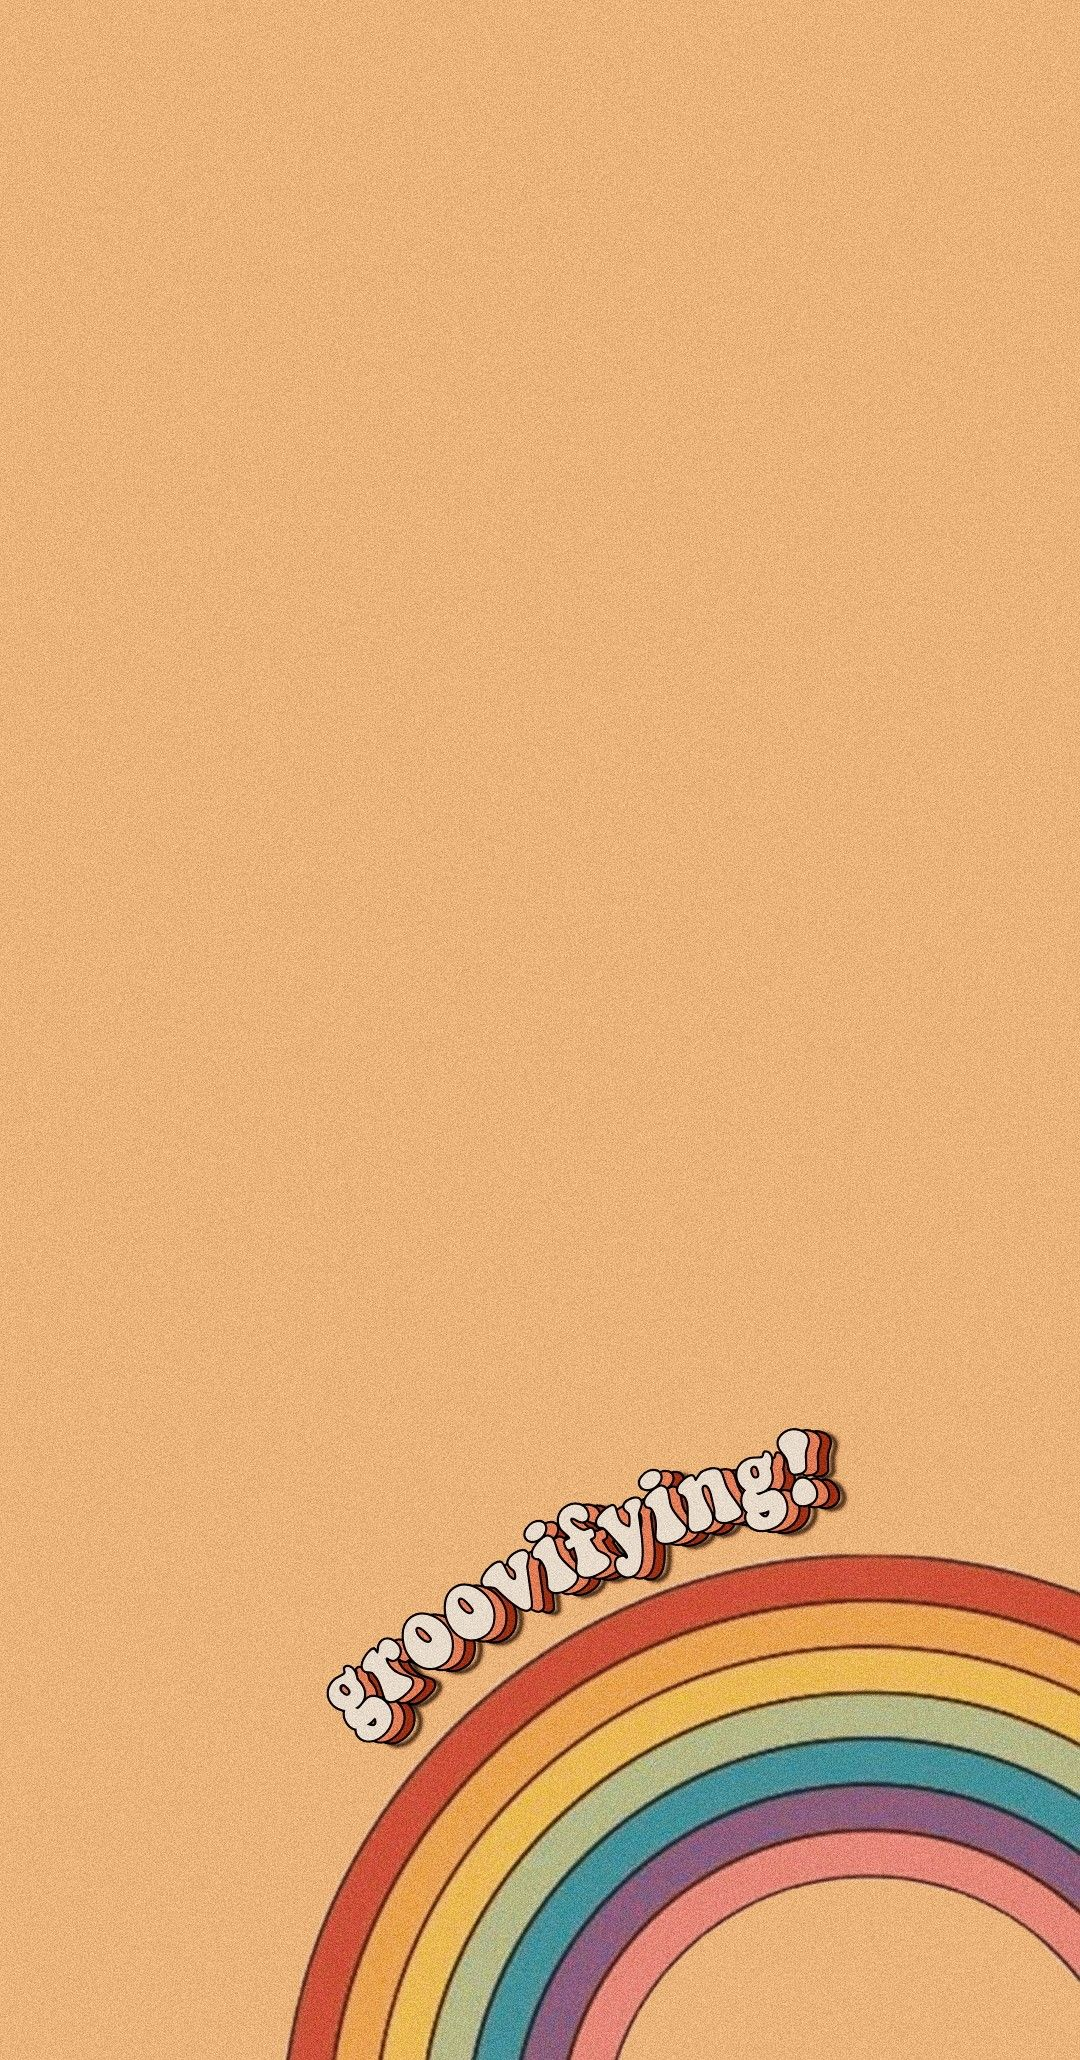 Groovying Wallpaper Lockscreen Background Aesthetic